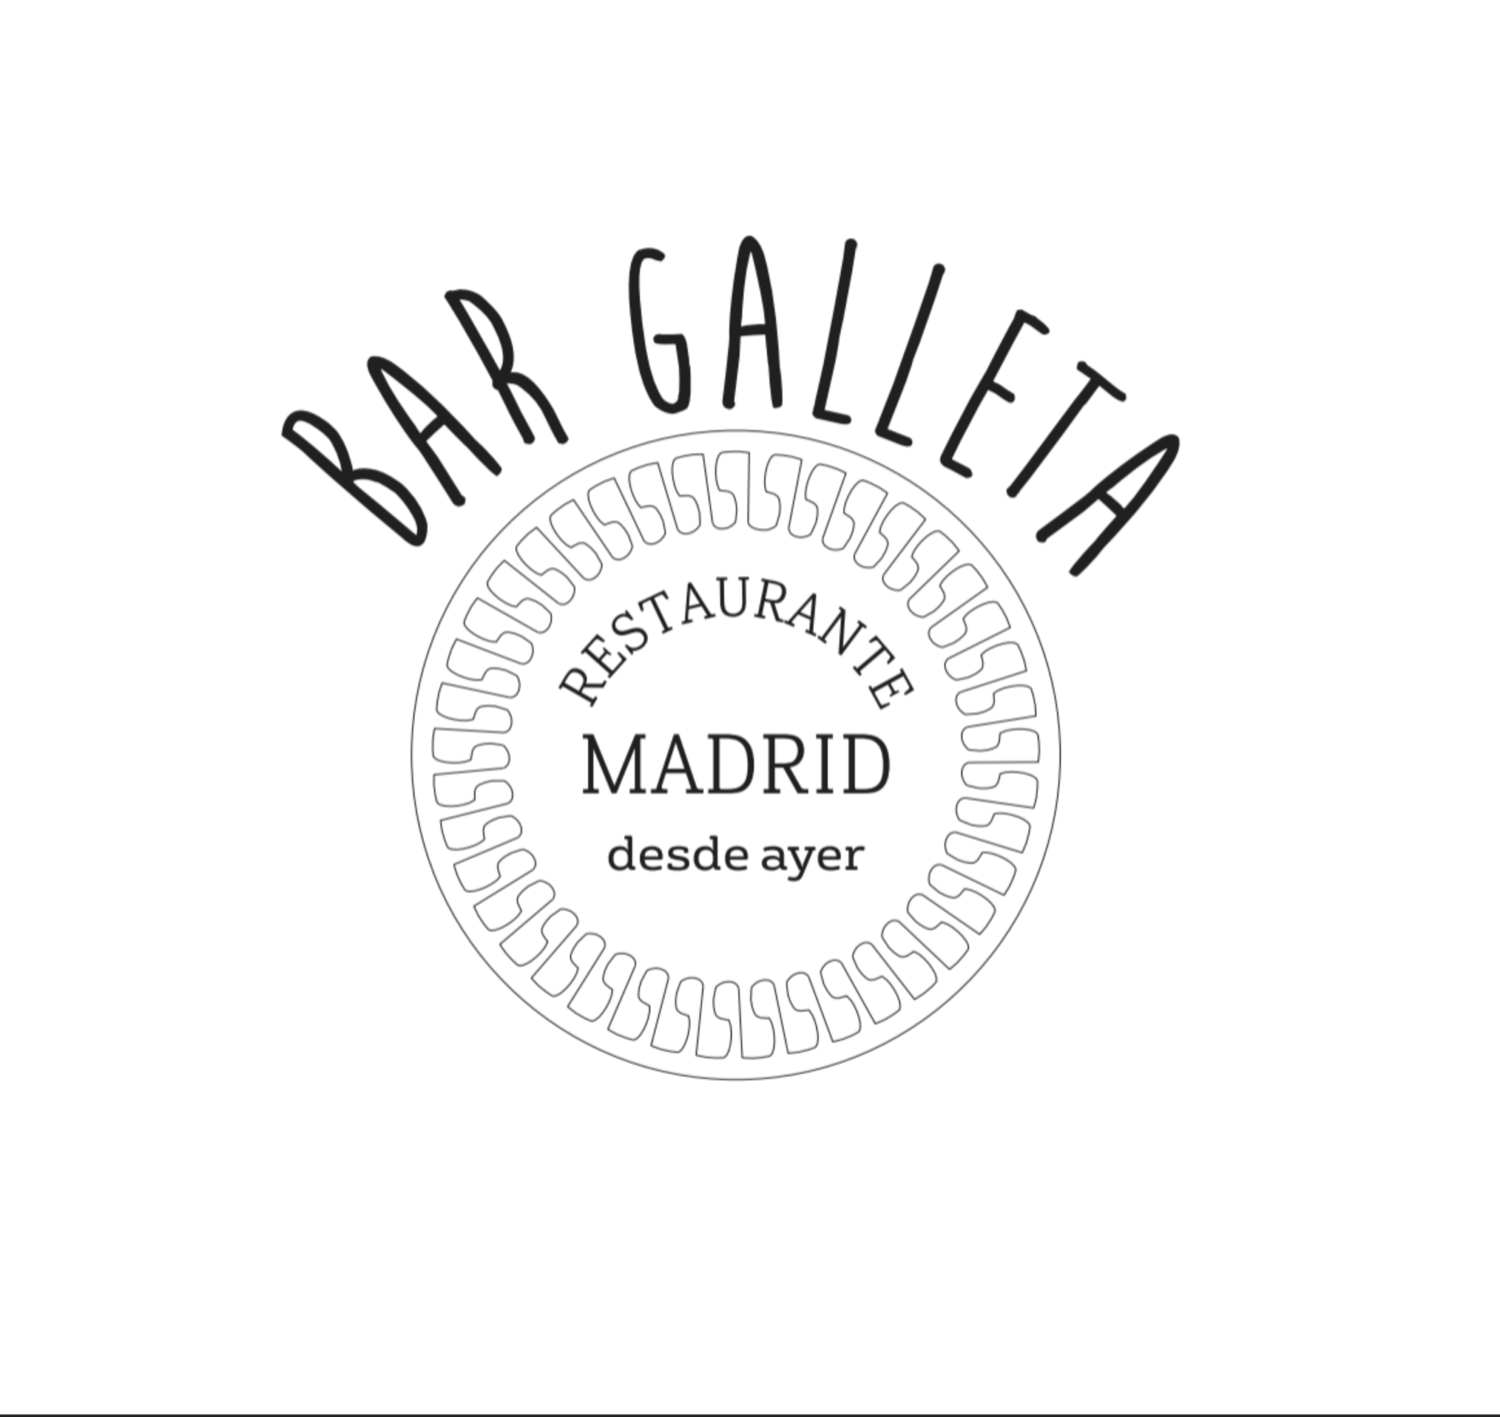 Bar Galleta avatar